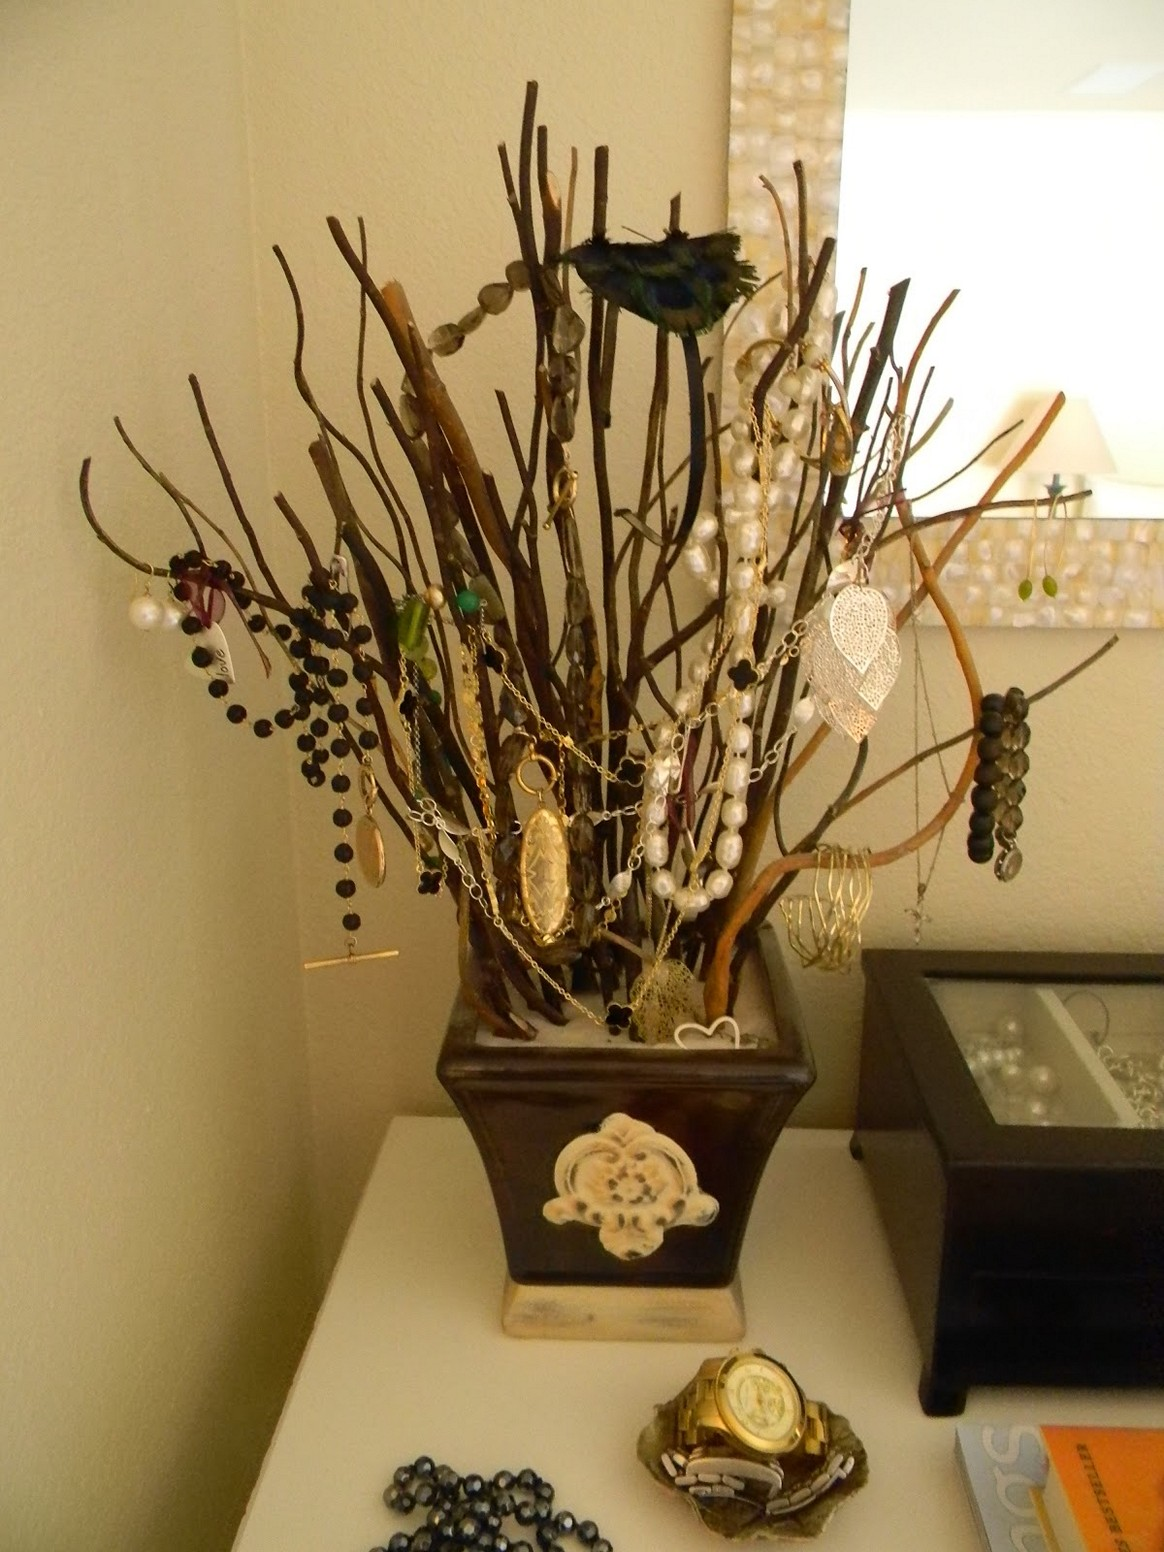 Jewelry display ideas for your home by placing various branches in a pot and hanging your jewels on them.